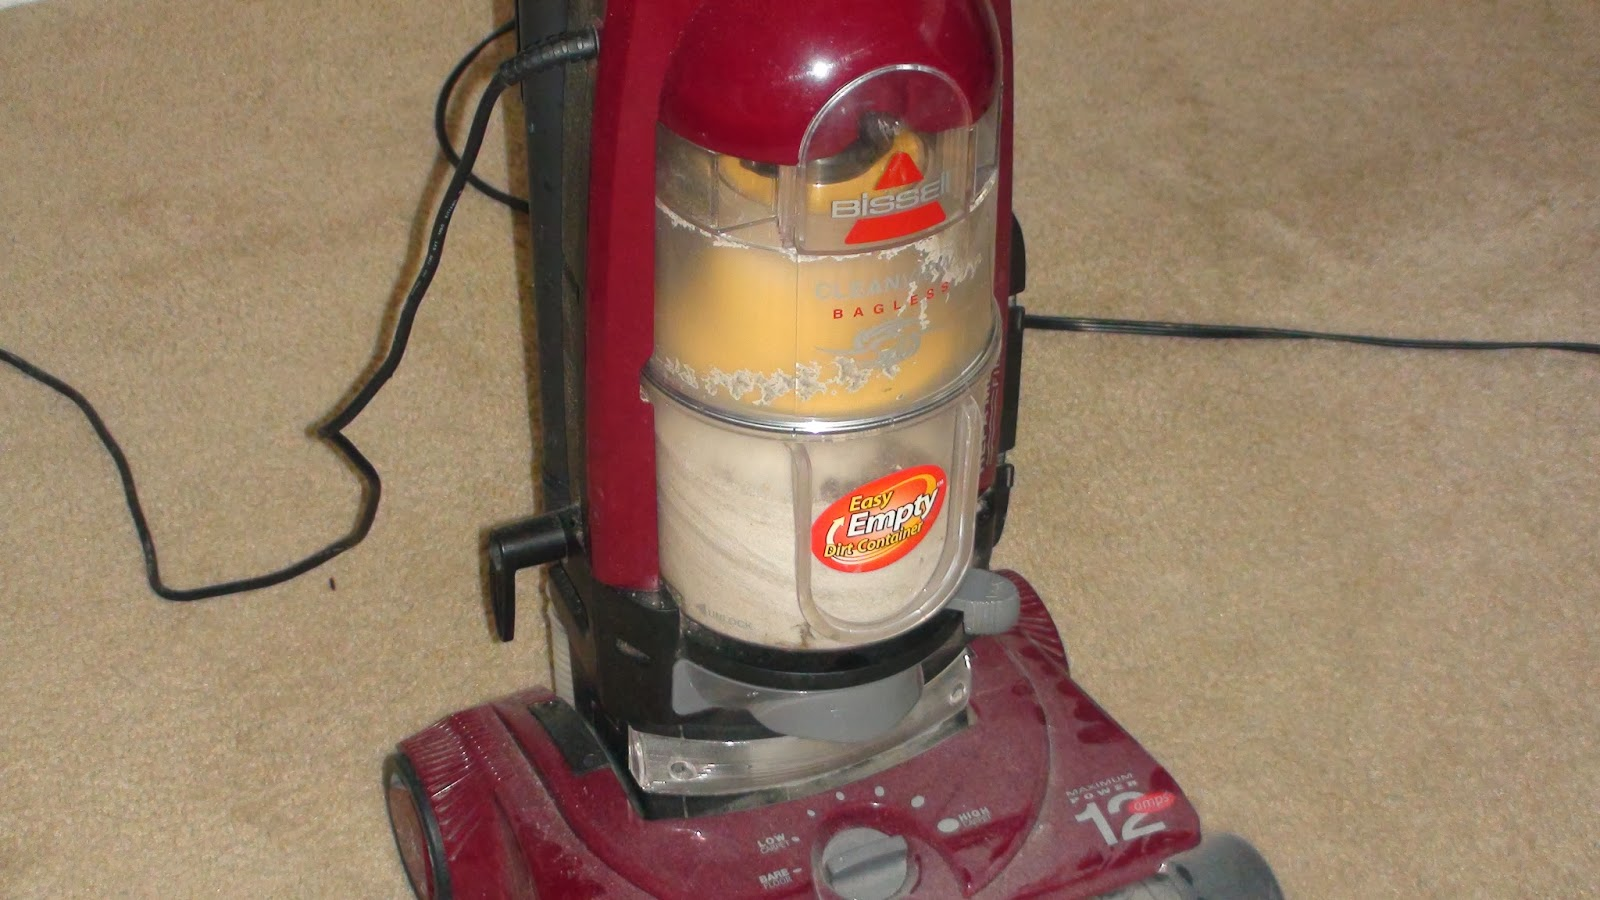 Make sure you clean and wipe your vacuum afterwards. The salt may  #B22919